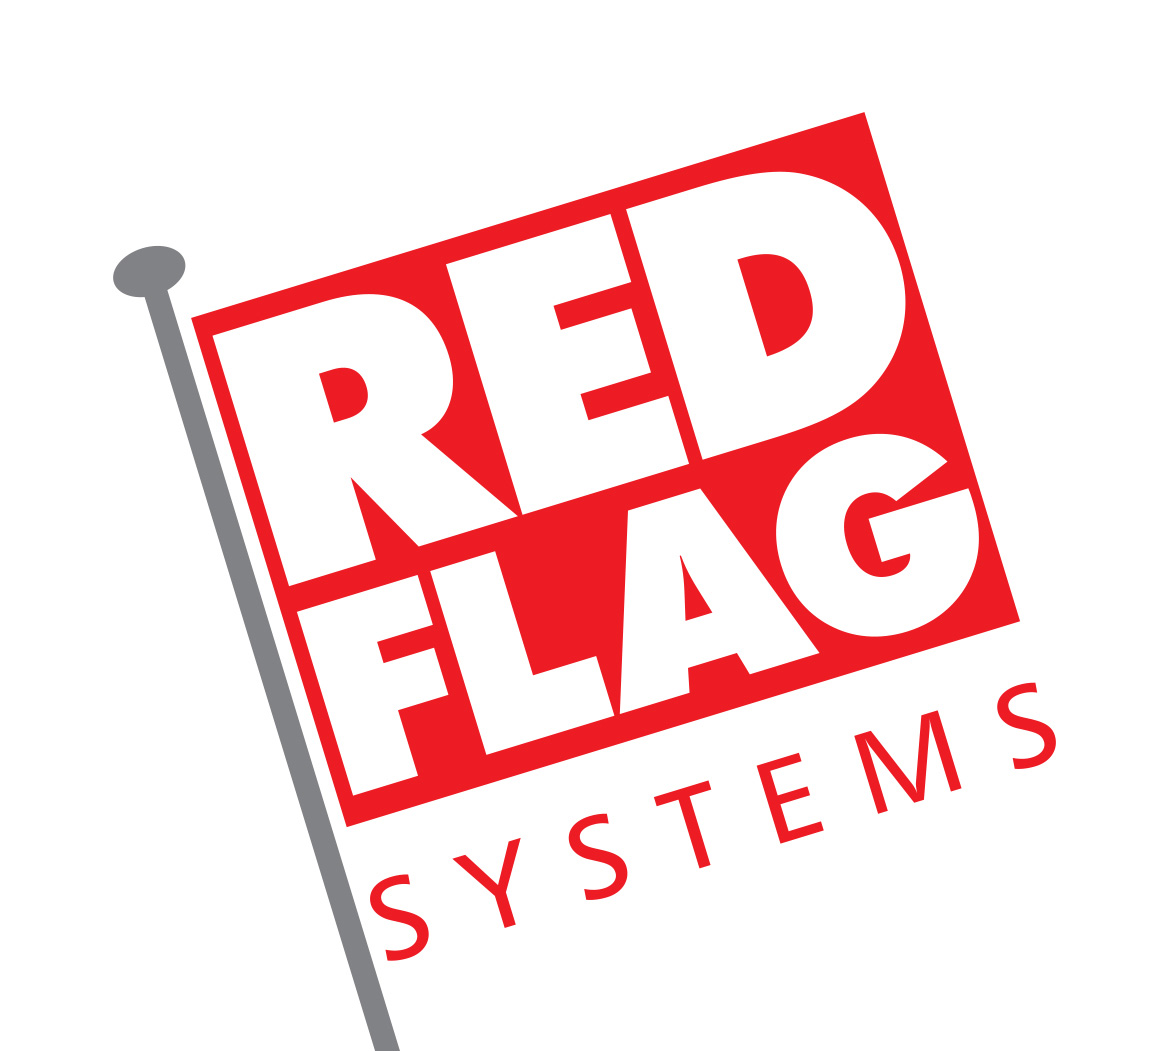 commercial security systems Red Flag Systems logo